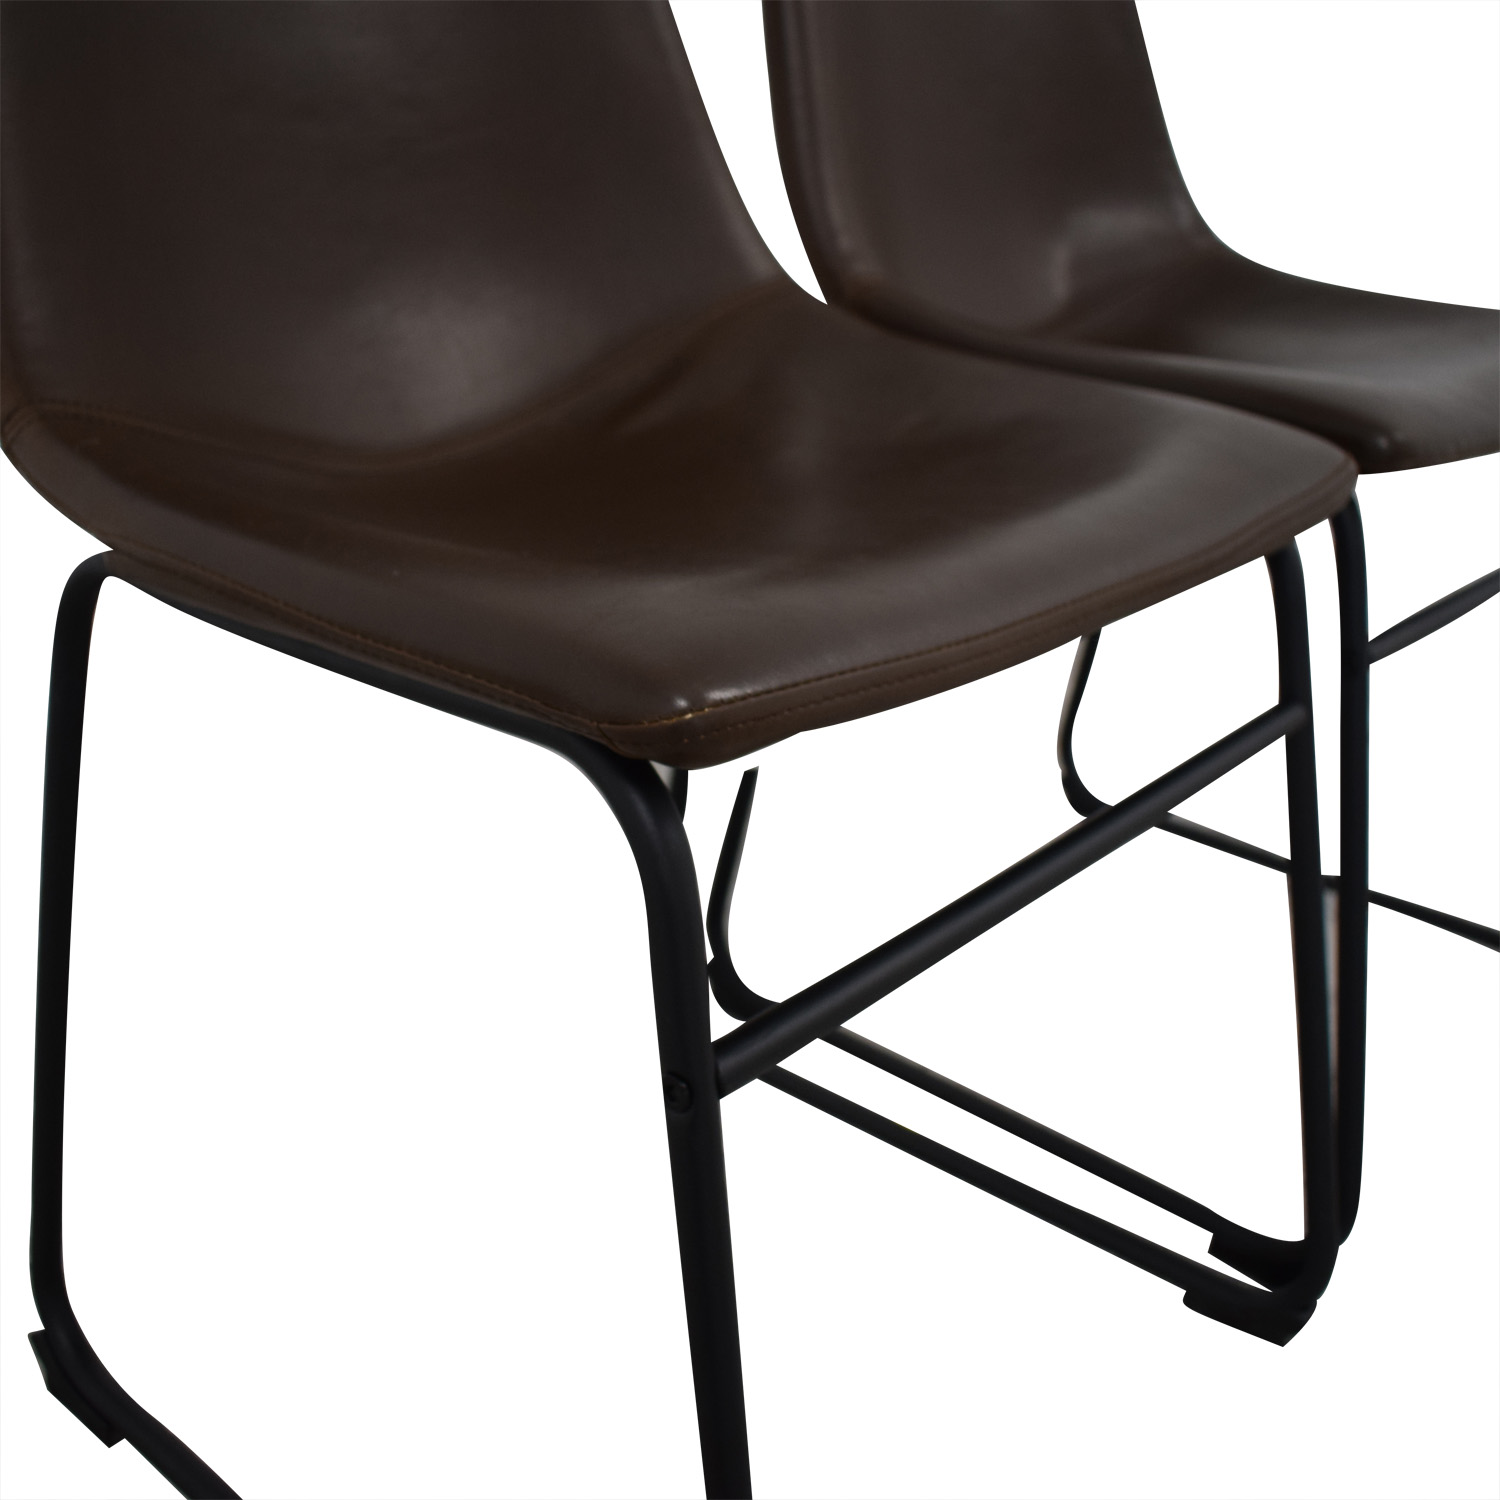 buy Walker Edison Industrial Faux Leather Dining Chairs Walker Edison Chairs